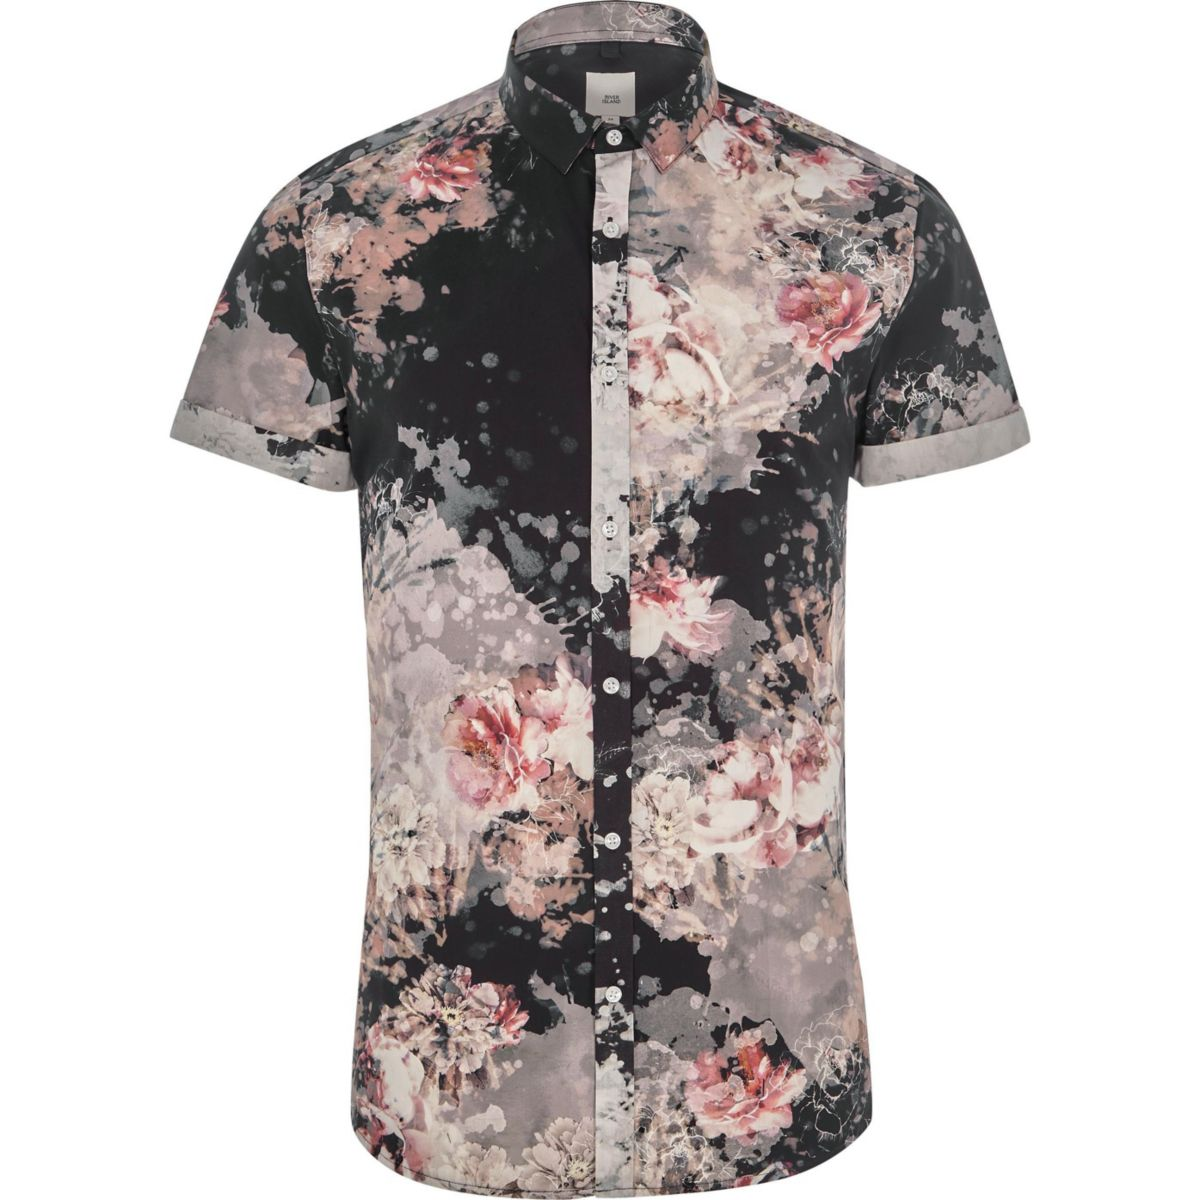 Black floral slim fit short sleeve shirt